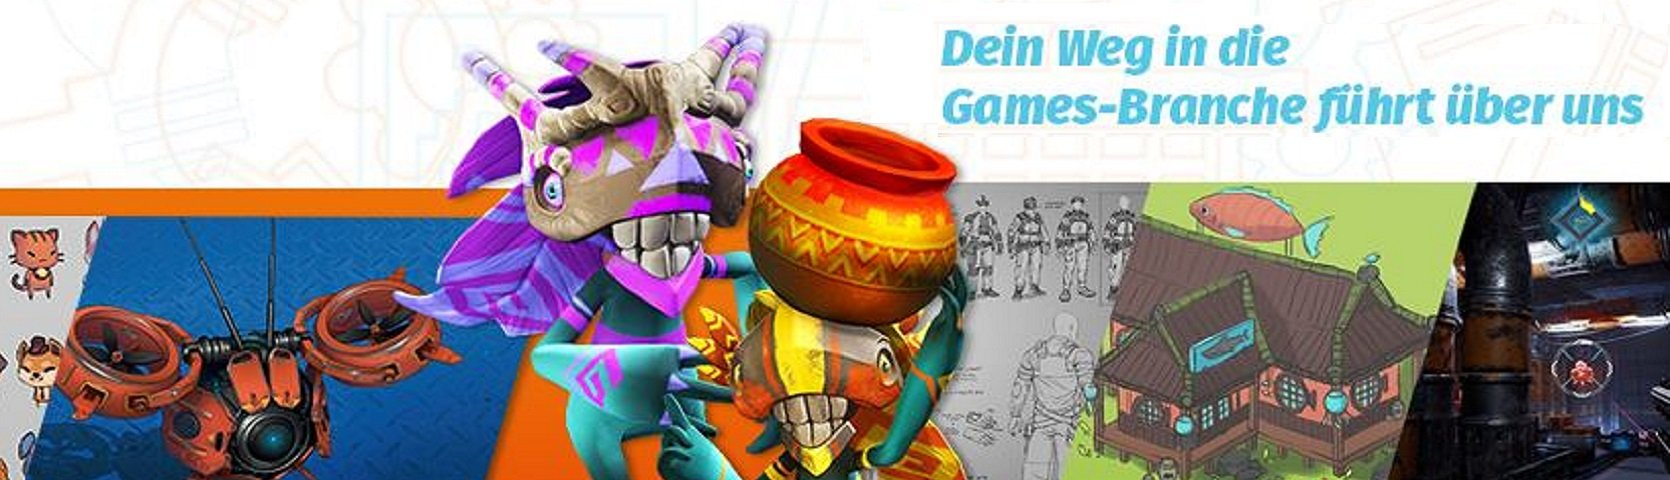 S4G School for Games GmbH